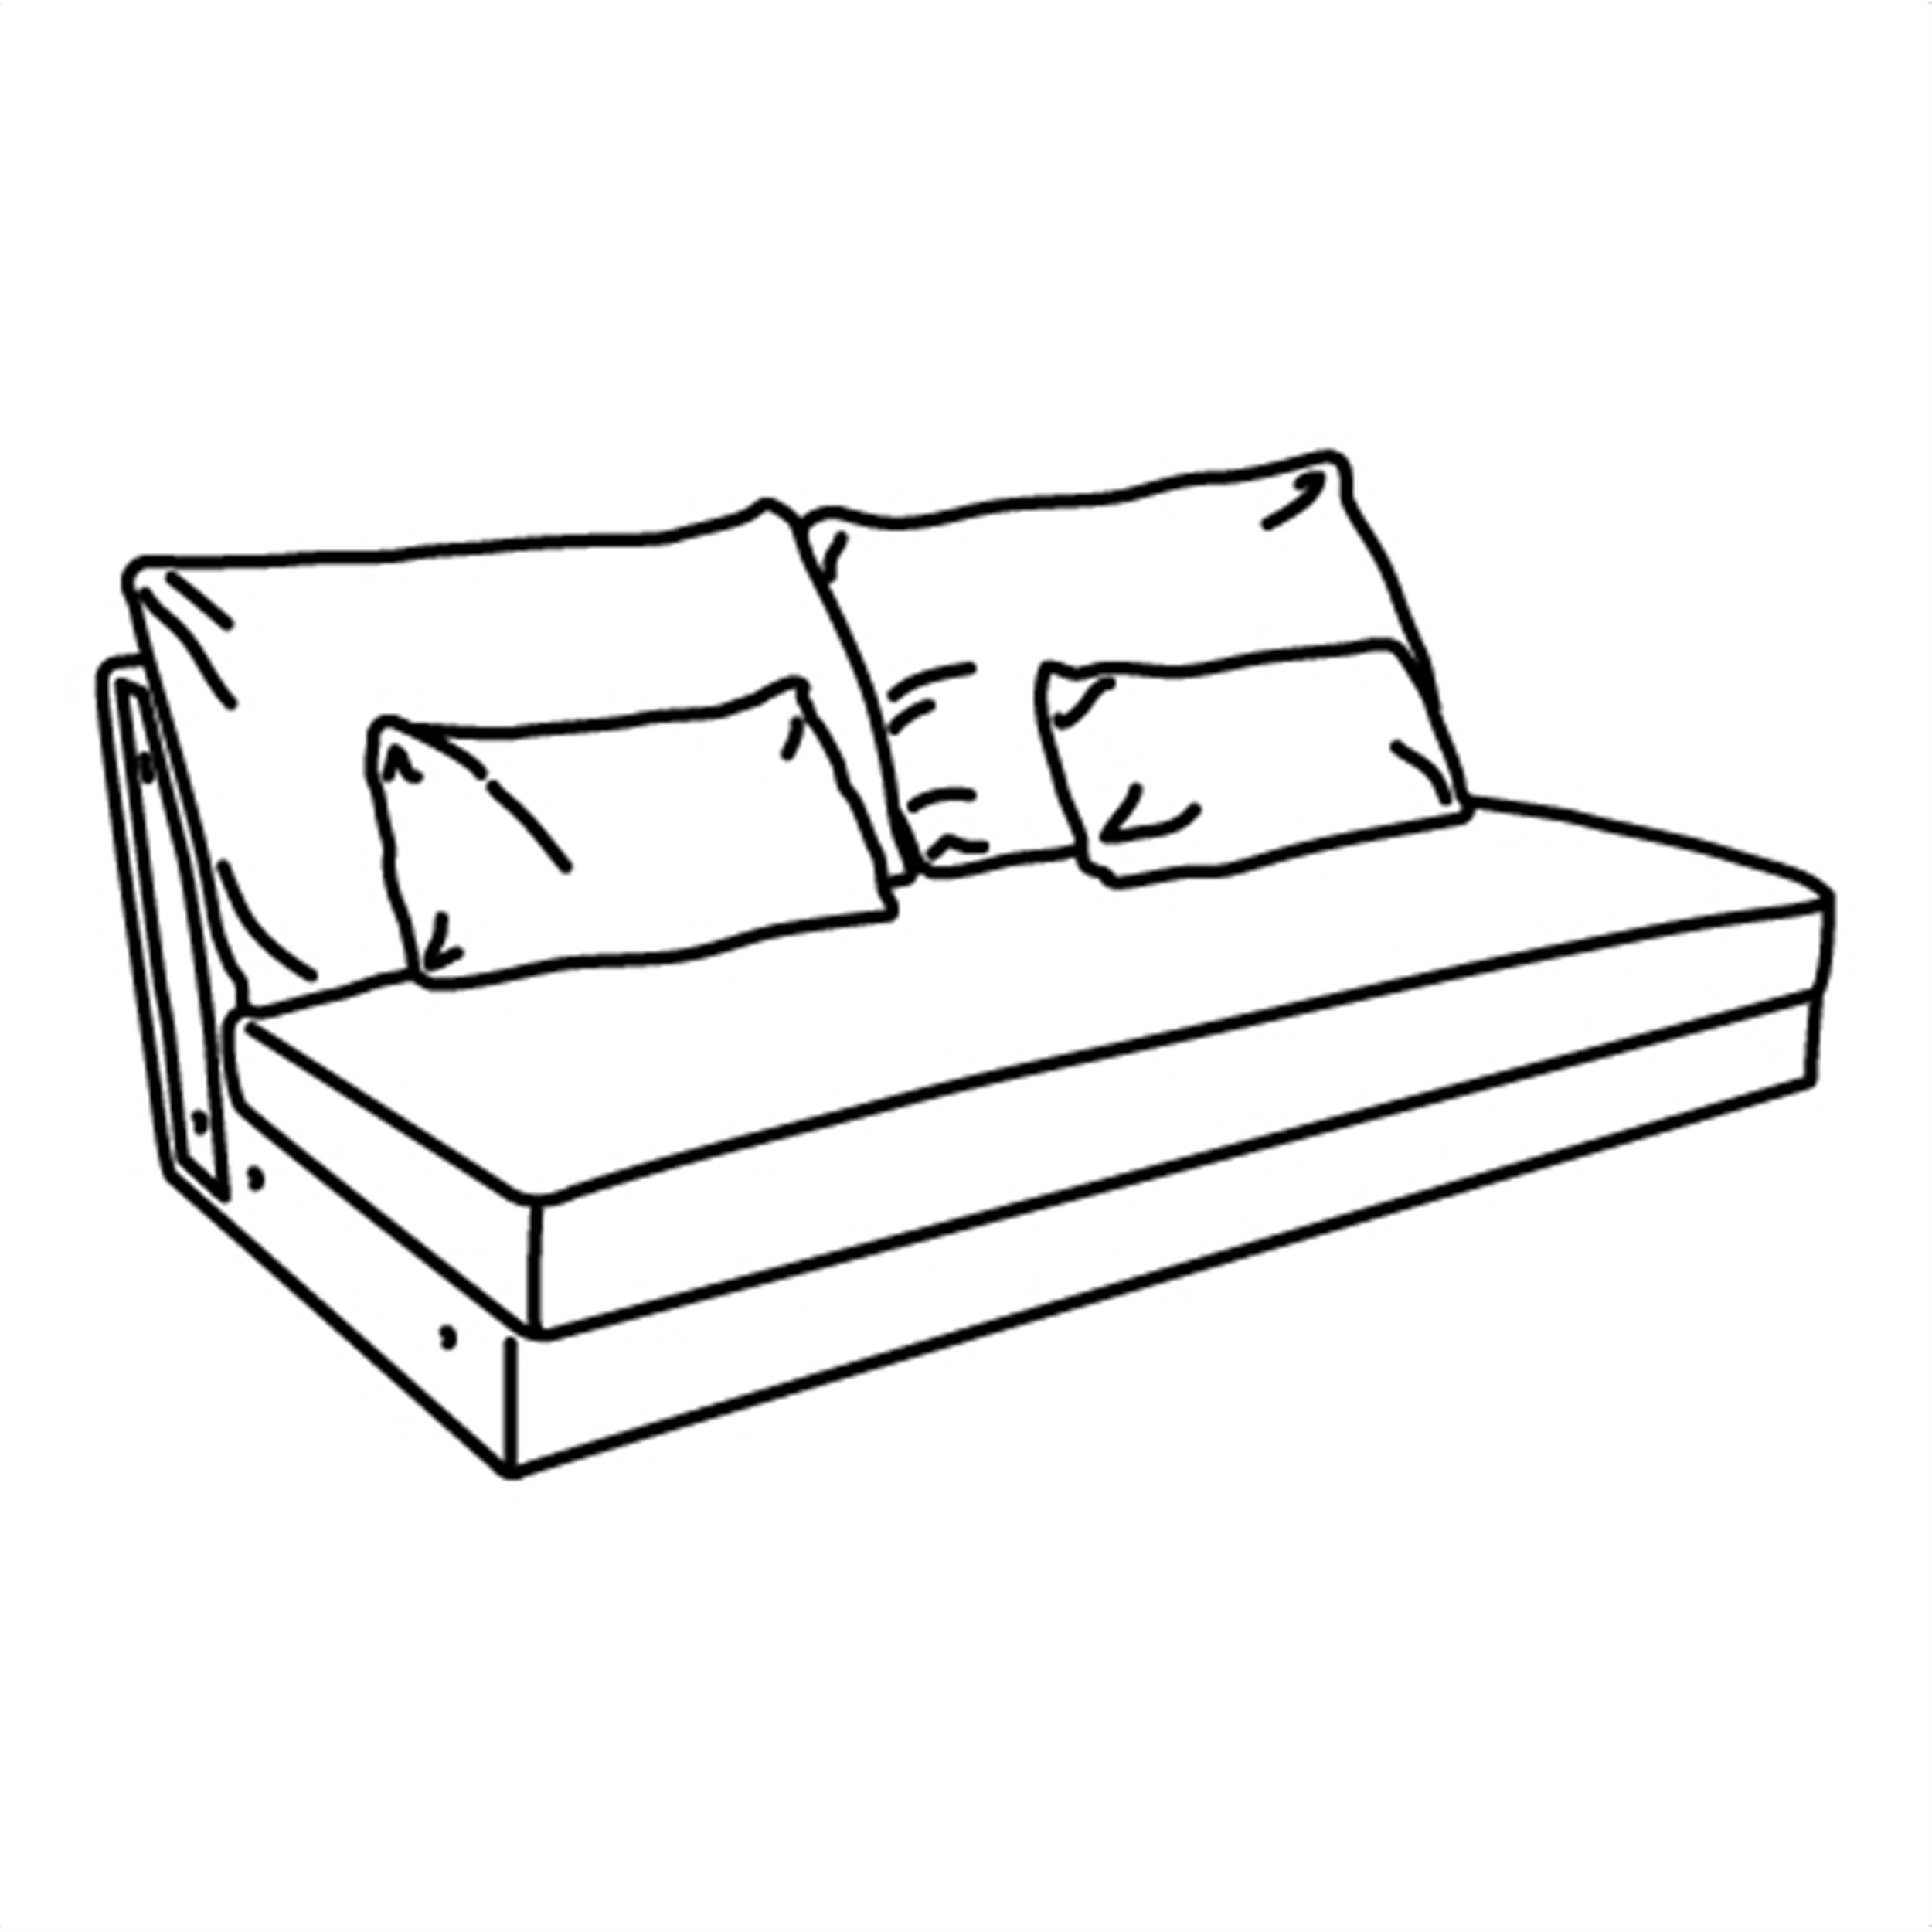 Färlöv sofa bed is comfortable to sleep in since it has a 12 cm thick foam mattress that is just as pliable as a bed mattress. FARLOV 3-seat sofa, White   IKEA Cyprus